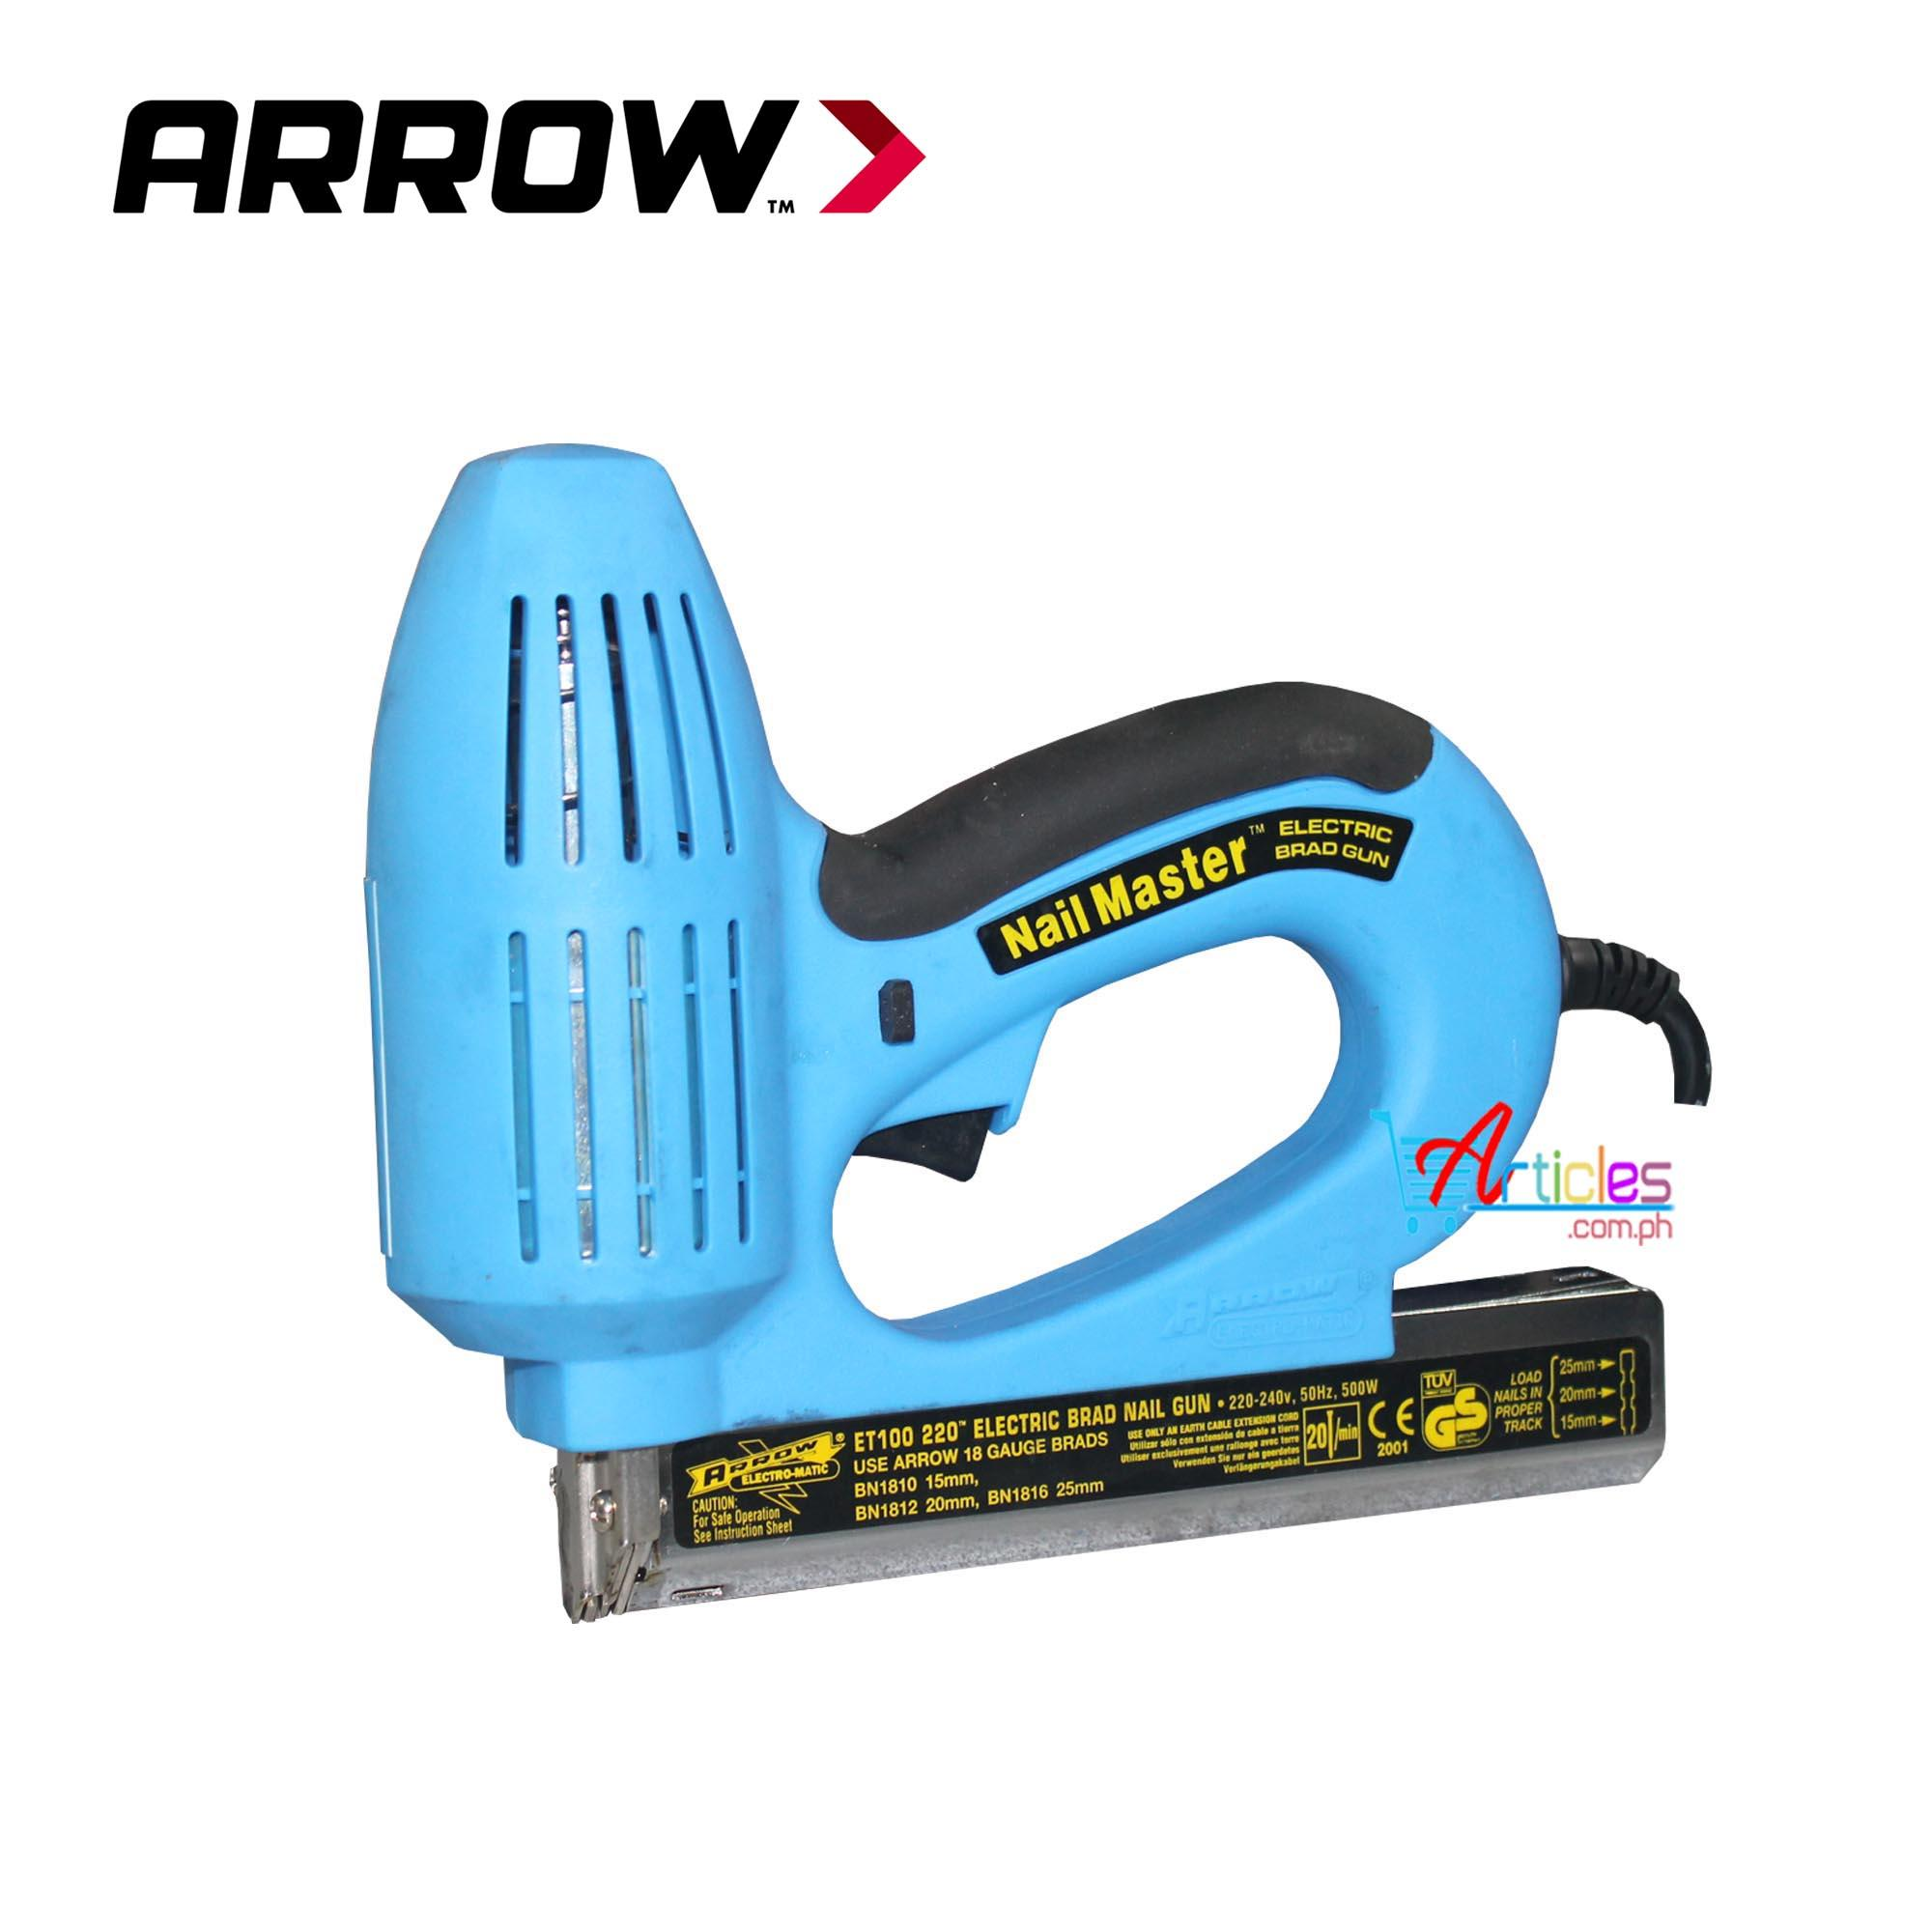 Nail Guns for sale - Staple Gun prices, brands & review in ...